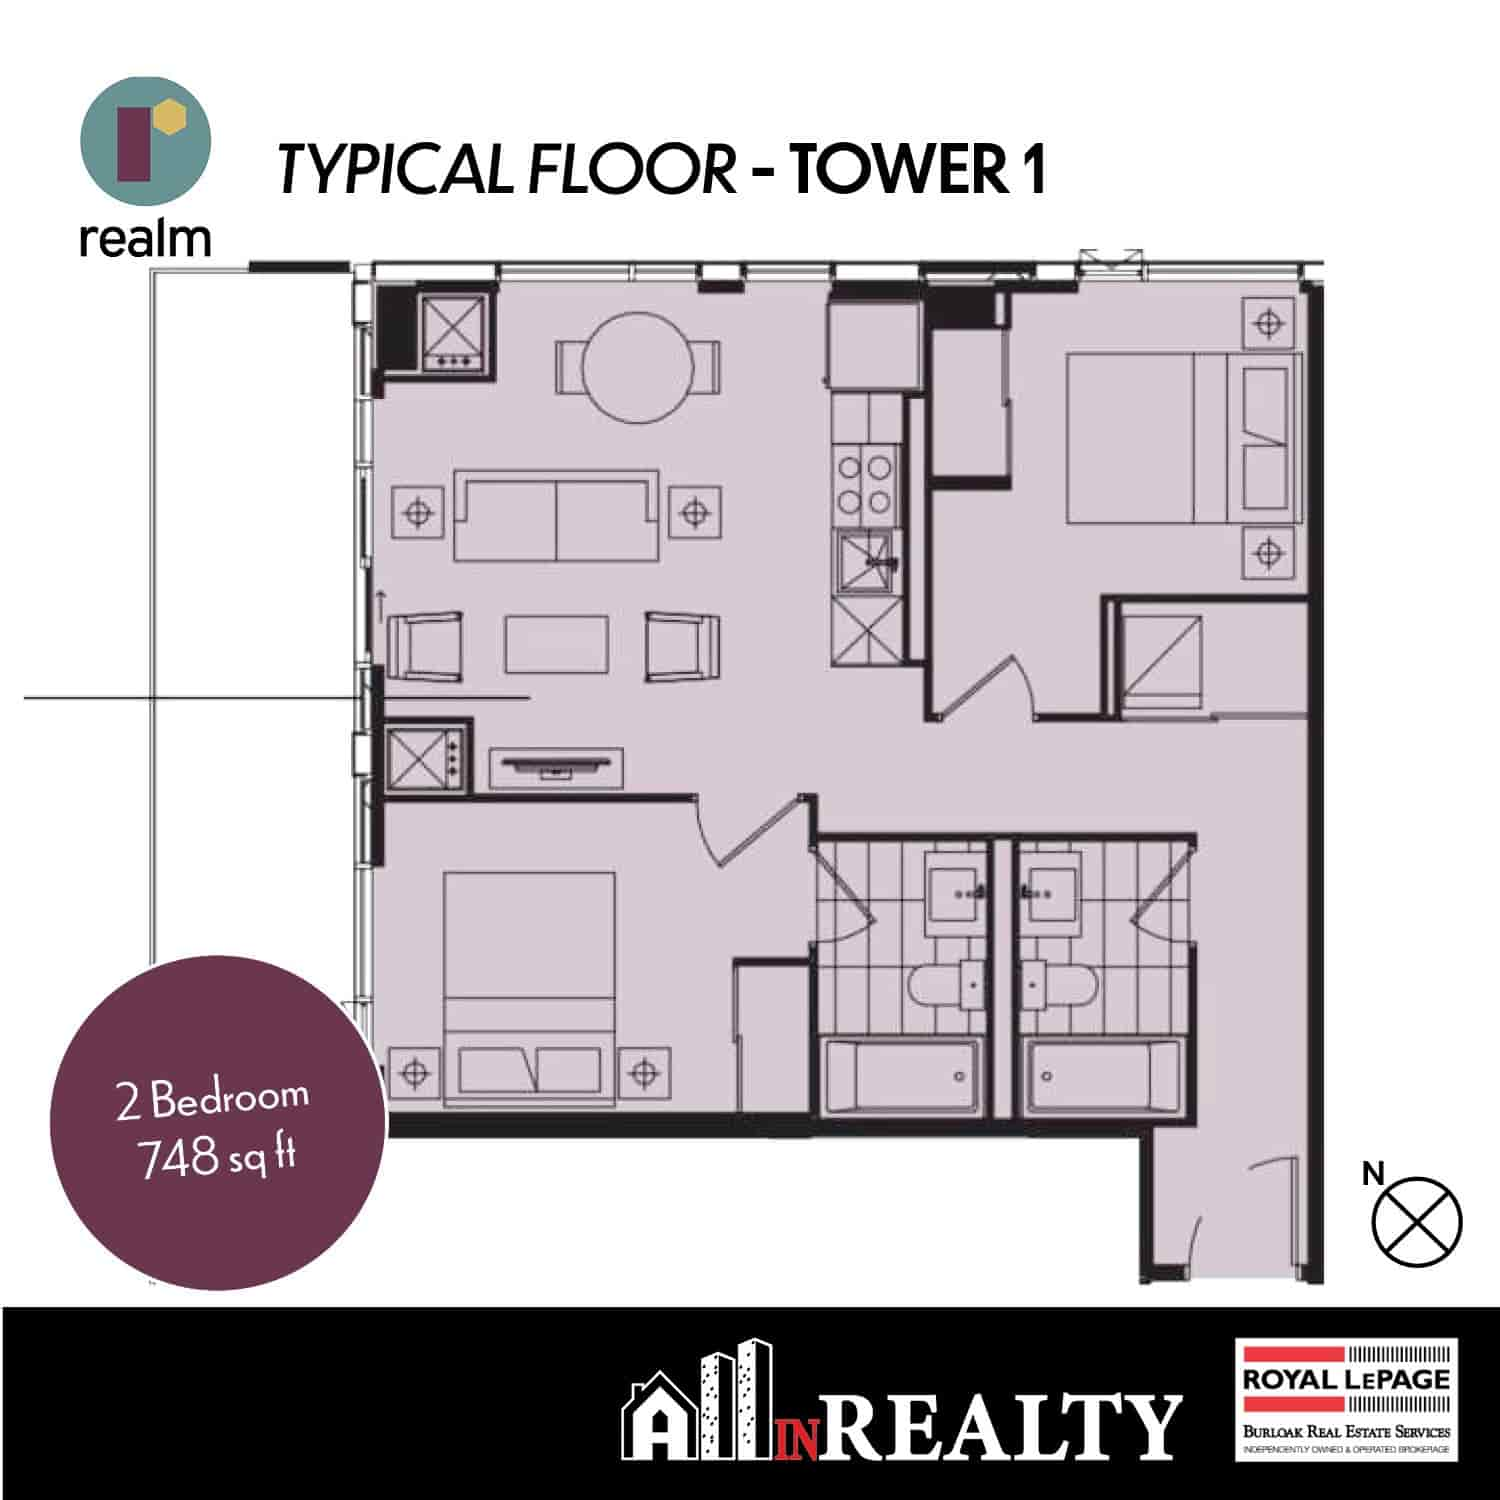 Realm 2 Bedroom